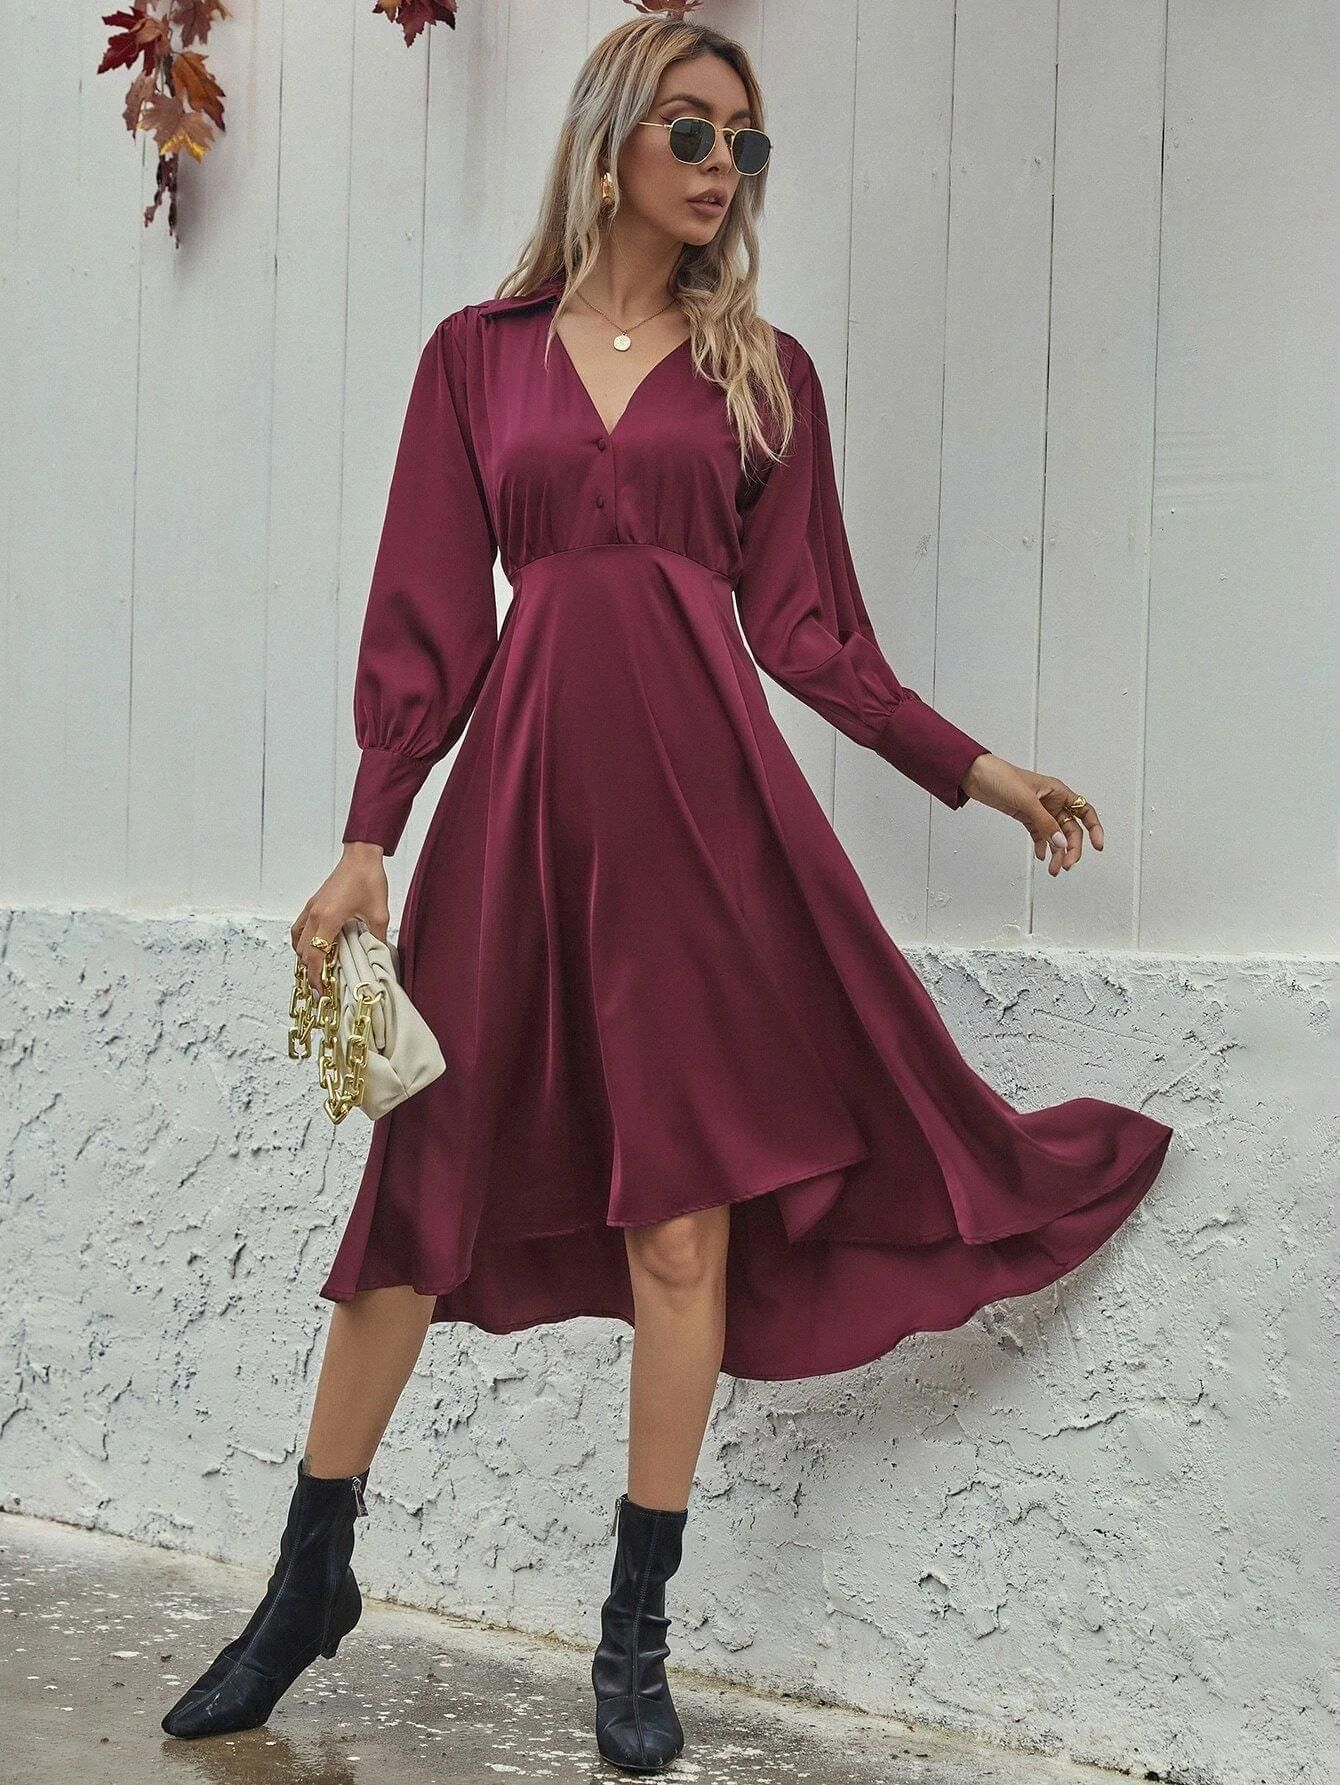 Satin Covered Button Puff Sleeve A Line Dress 27 A Line Dress Satin Covered Buttons Dresses [ 1785 x 1340 Pixel ]